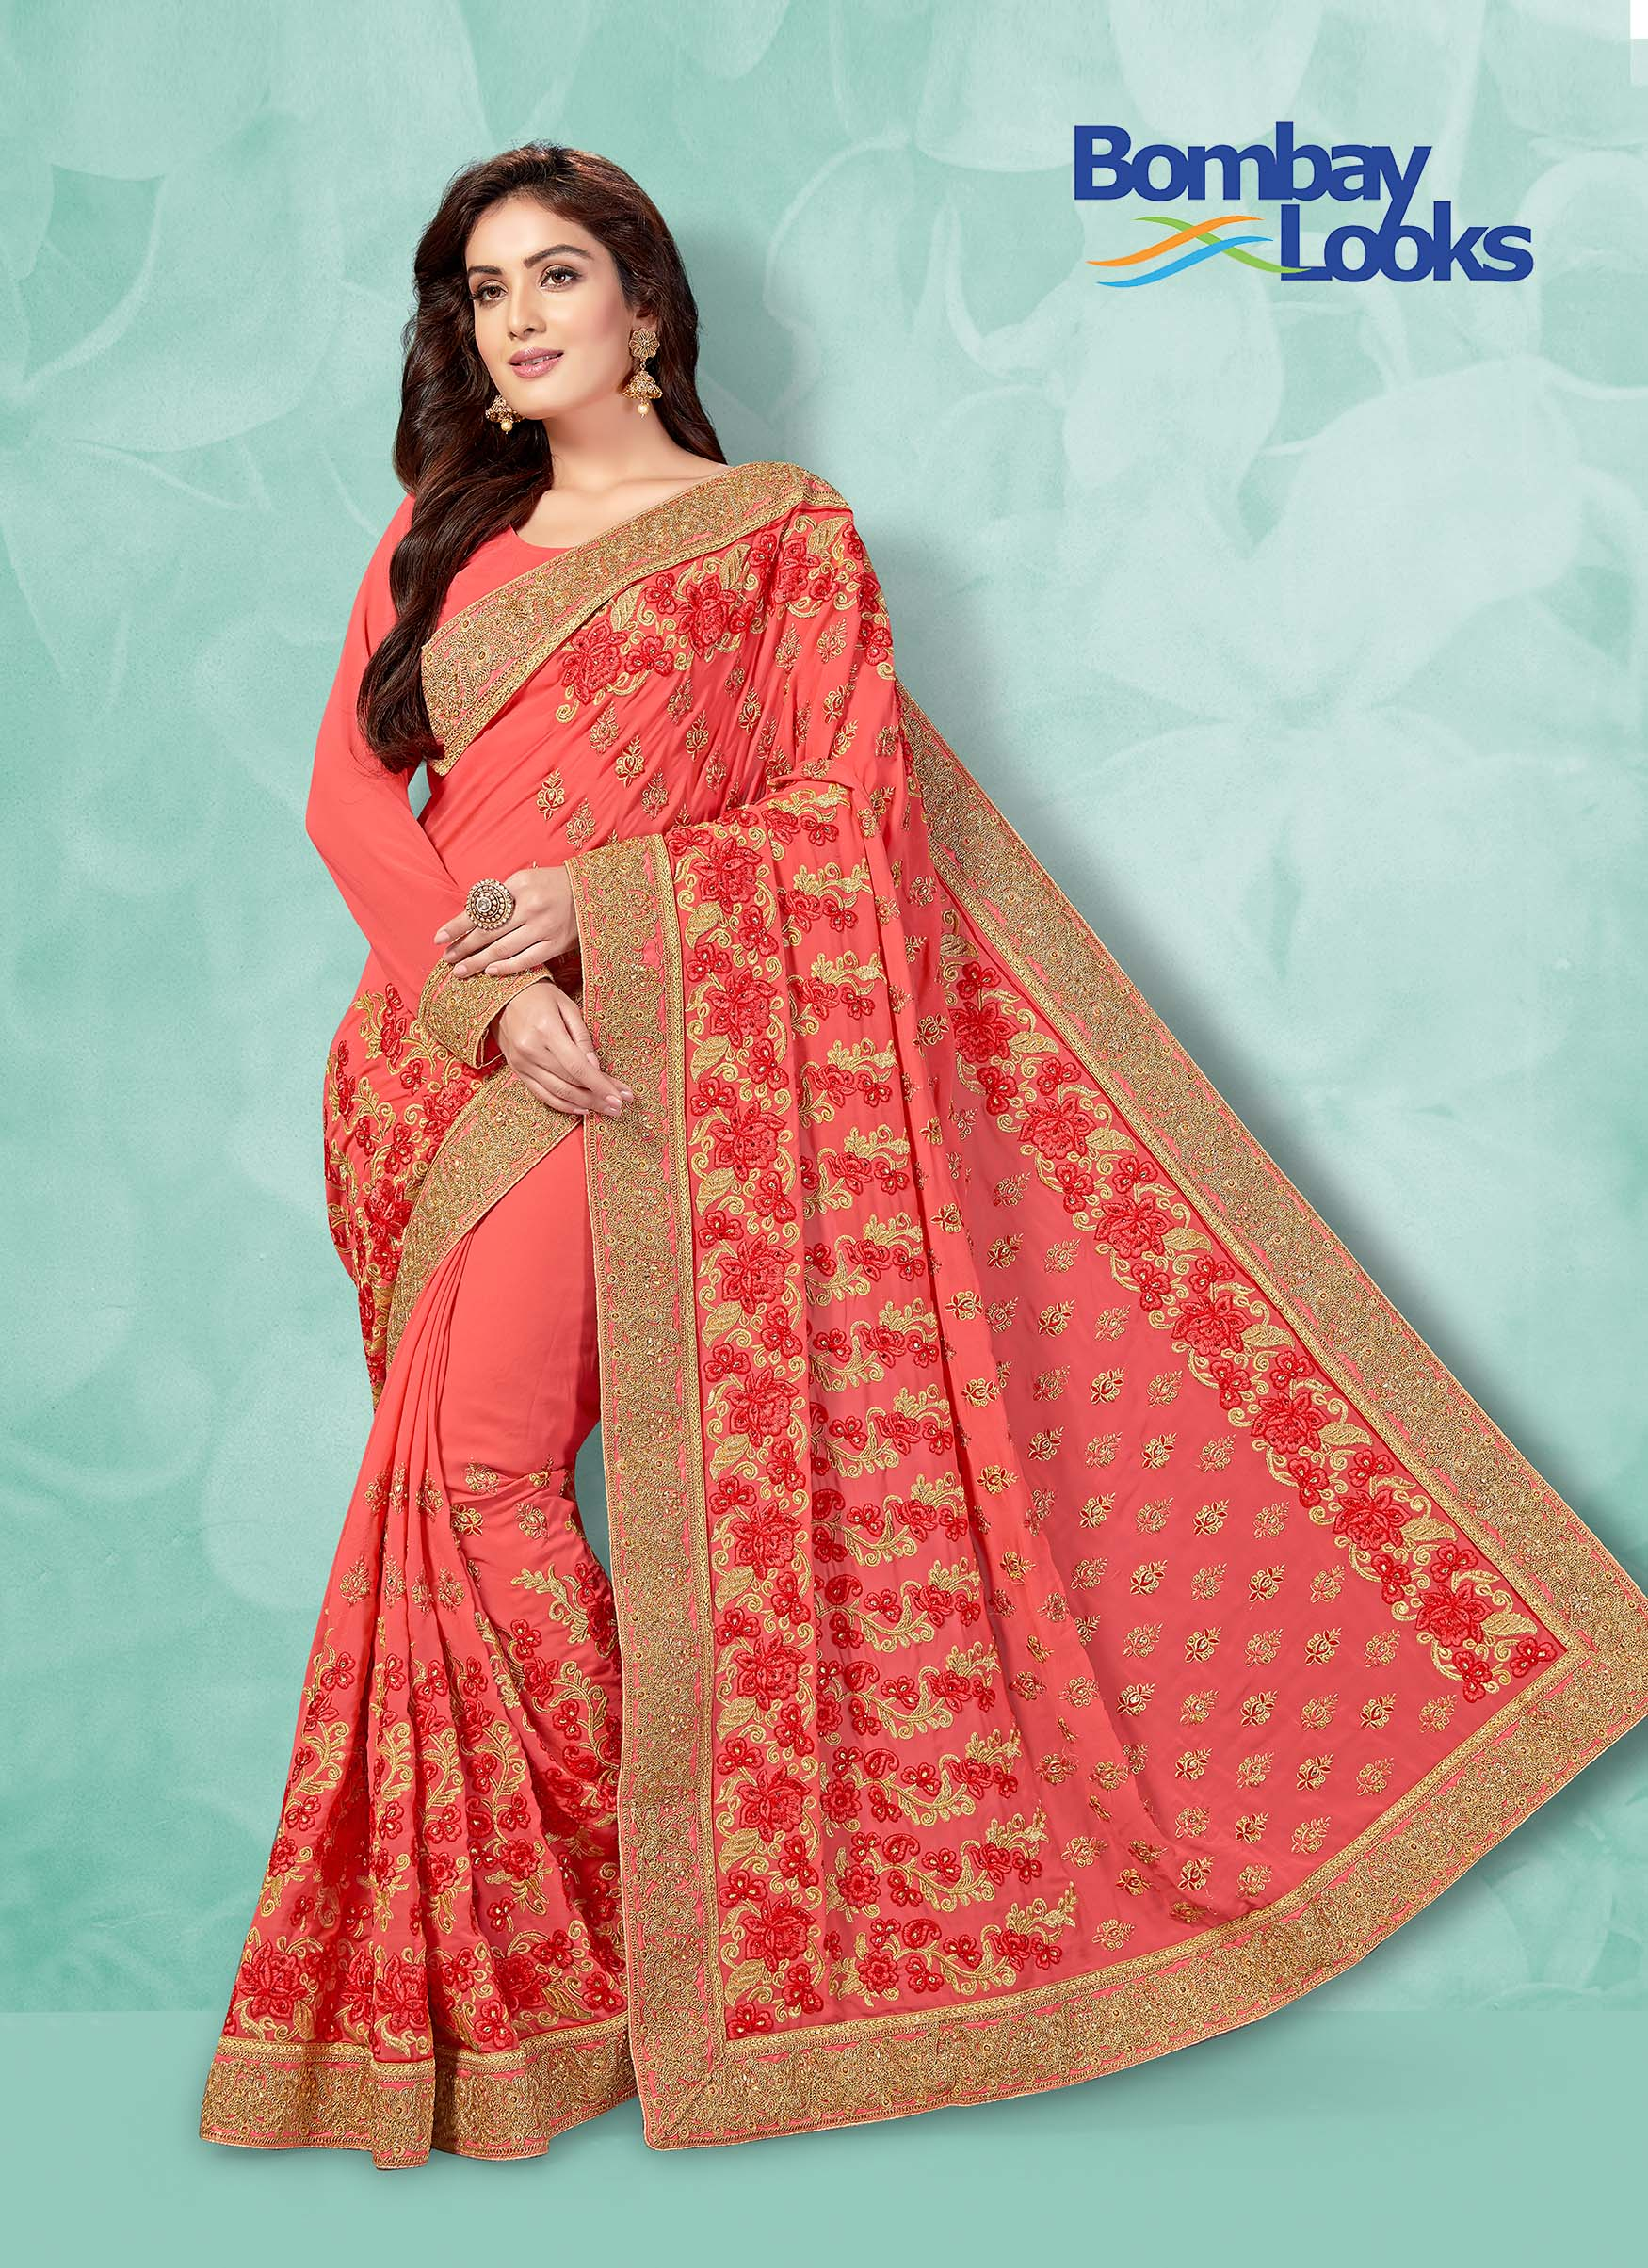 Fancy Georgette saree in Gajri with matching blouse.